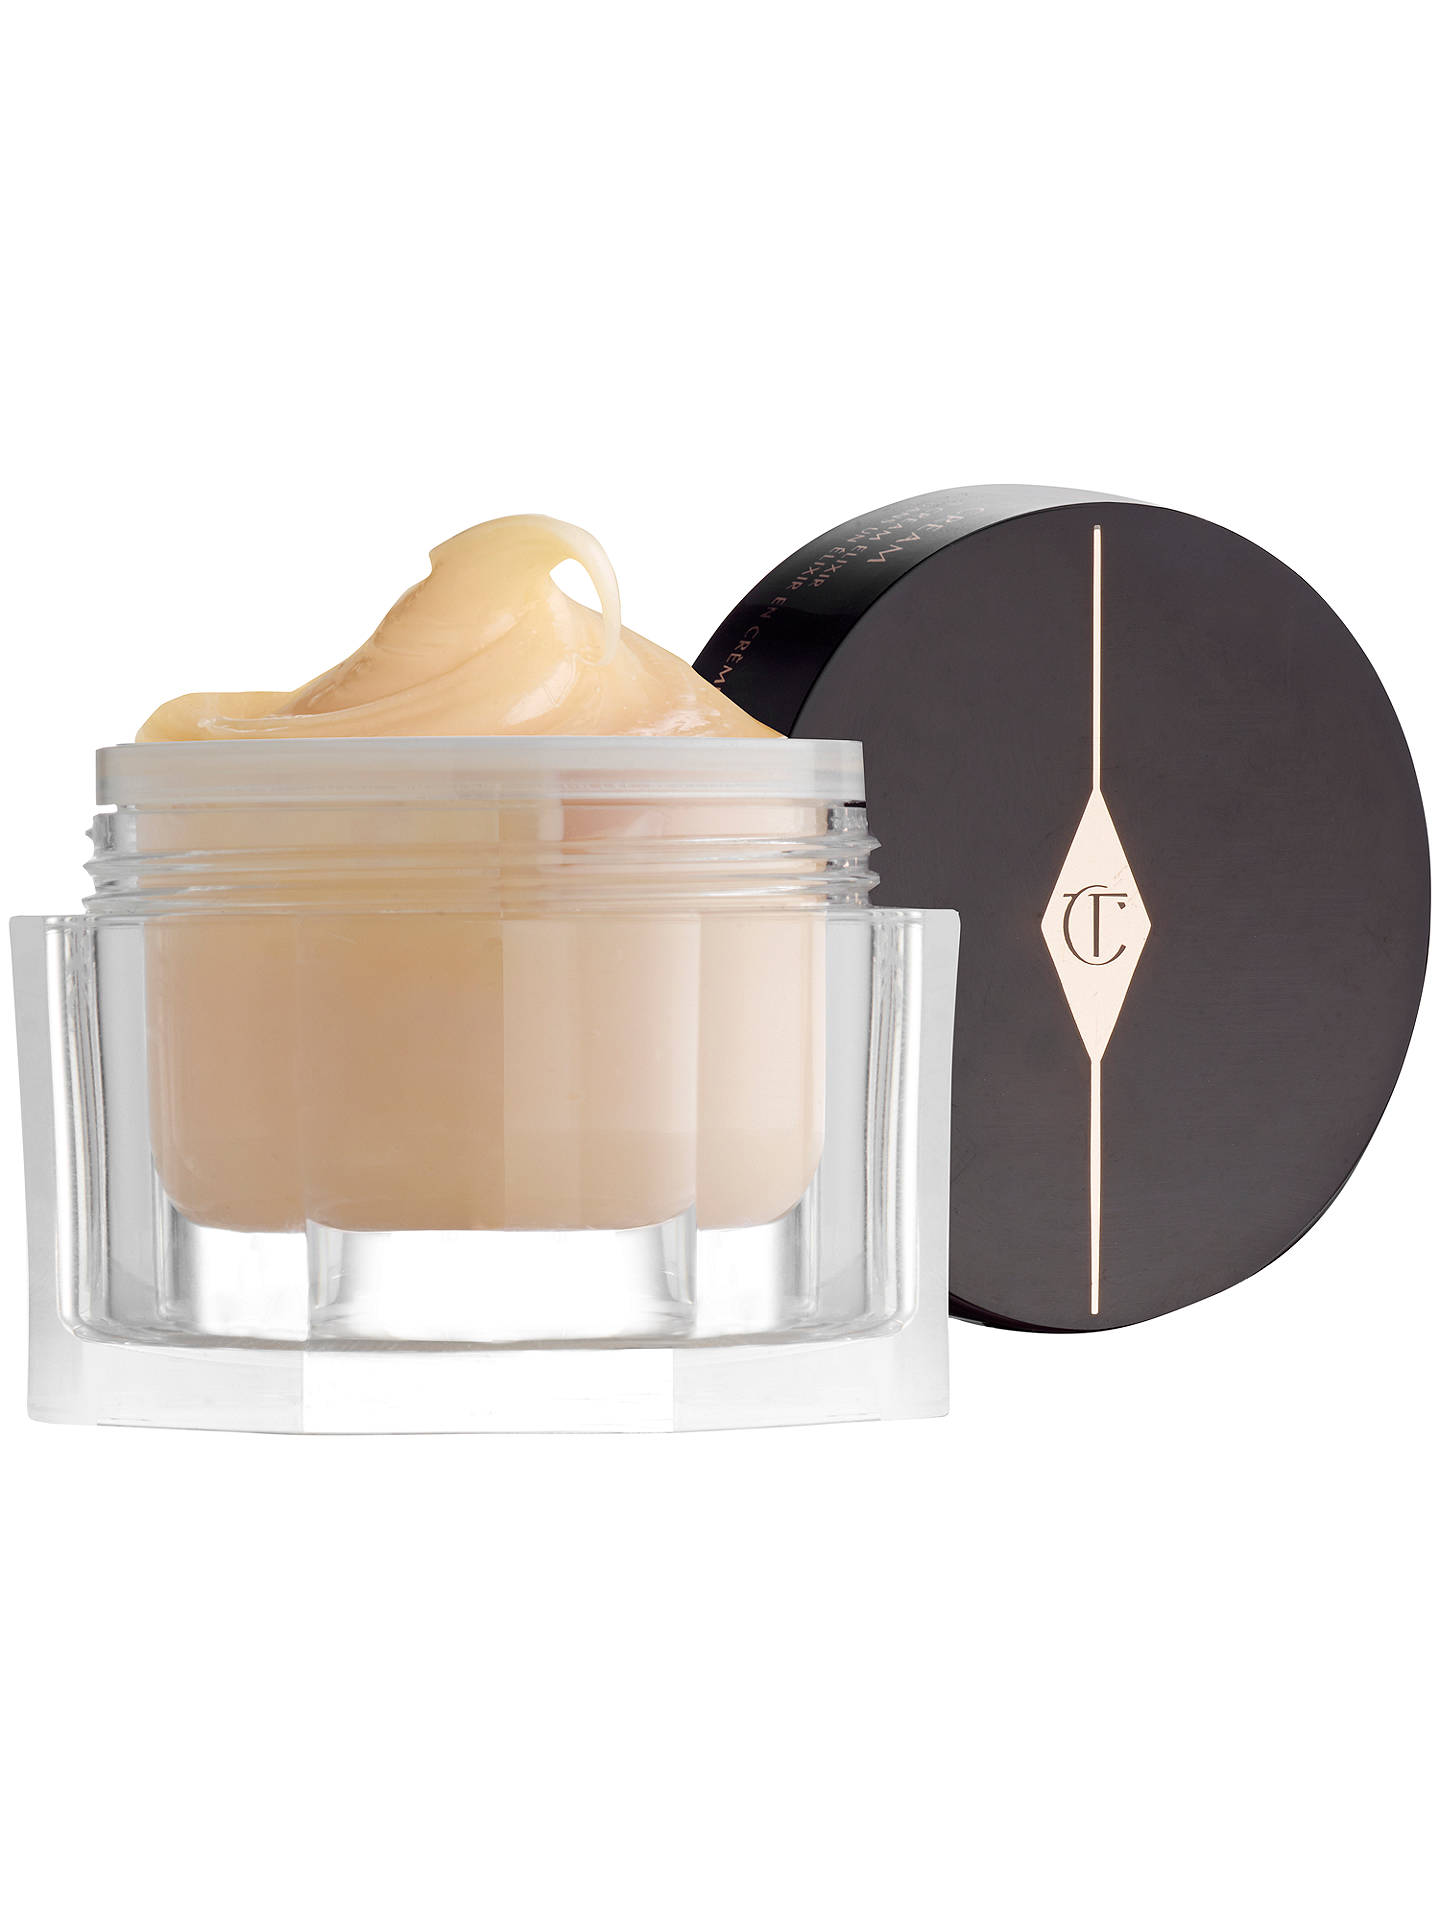 BuyMagic Night Rescue Cream - Intense Firming, Plumping Balm - Elixir, 50ml Online at johnlewis.com